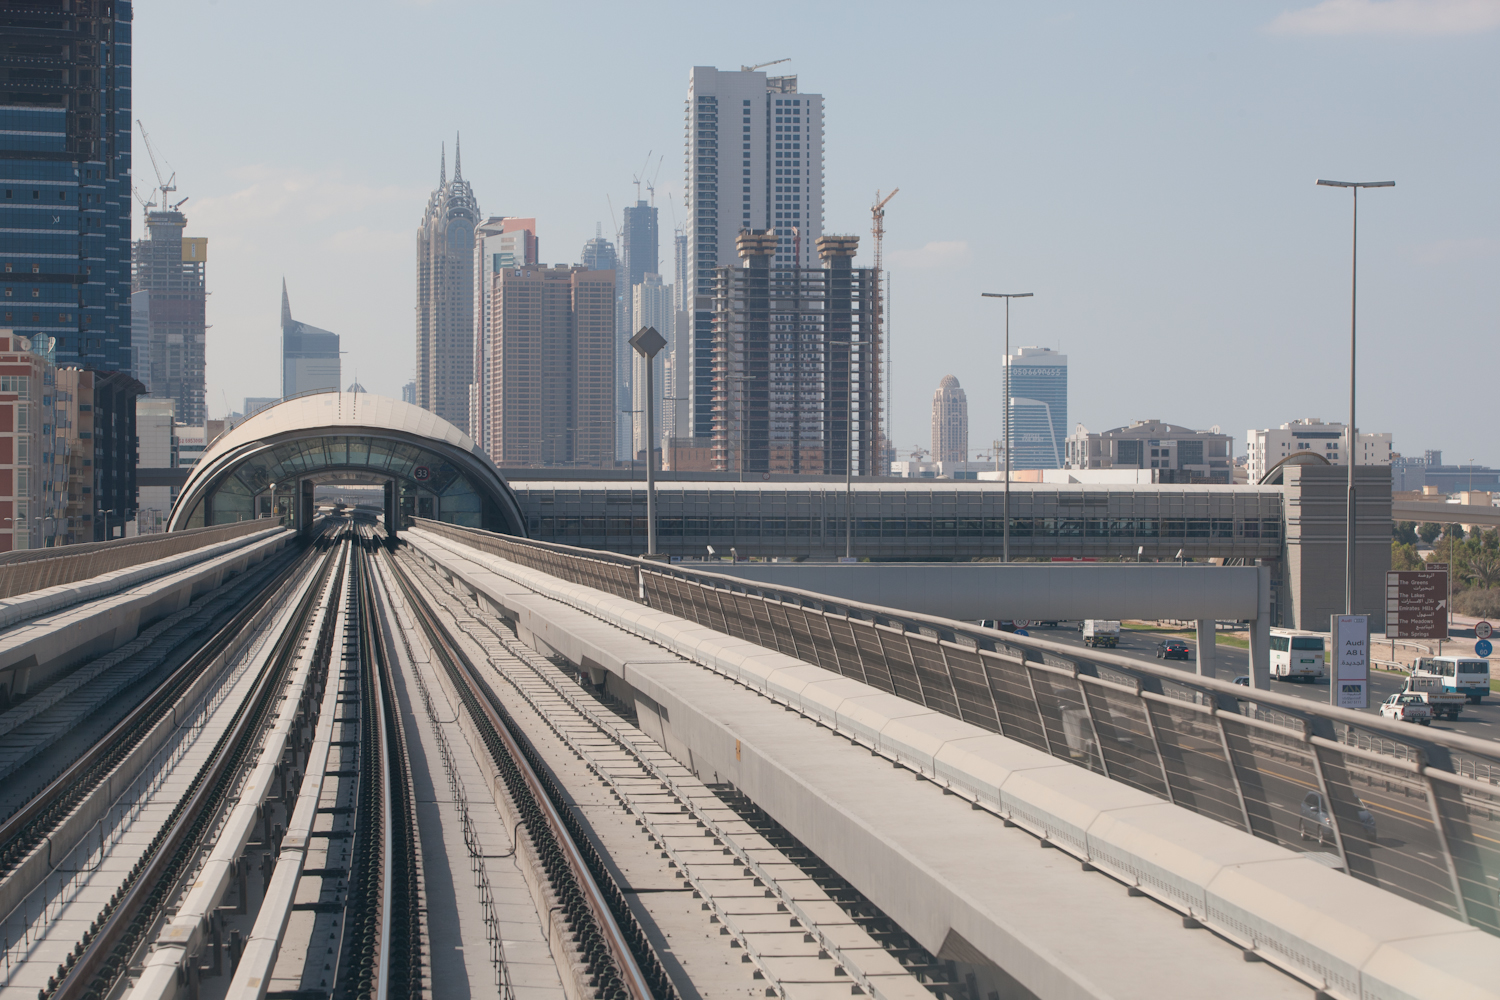 1._dubai_metro_dec_2010_025__mg_1218.jpg